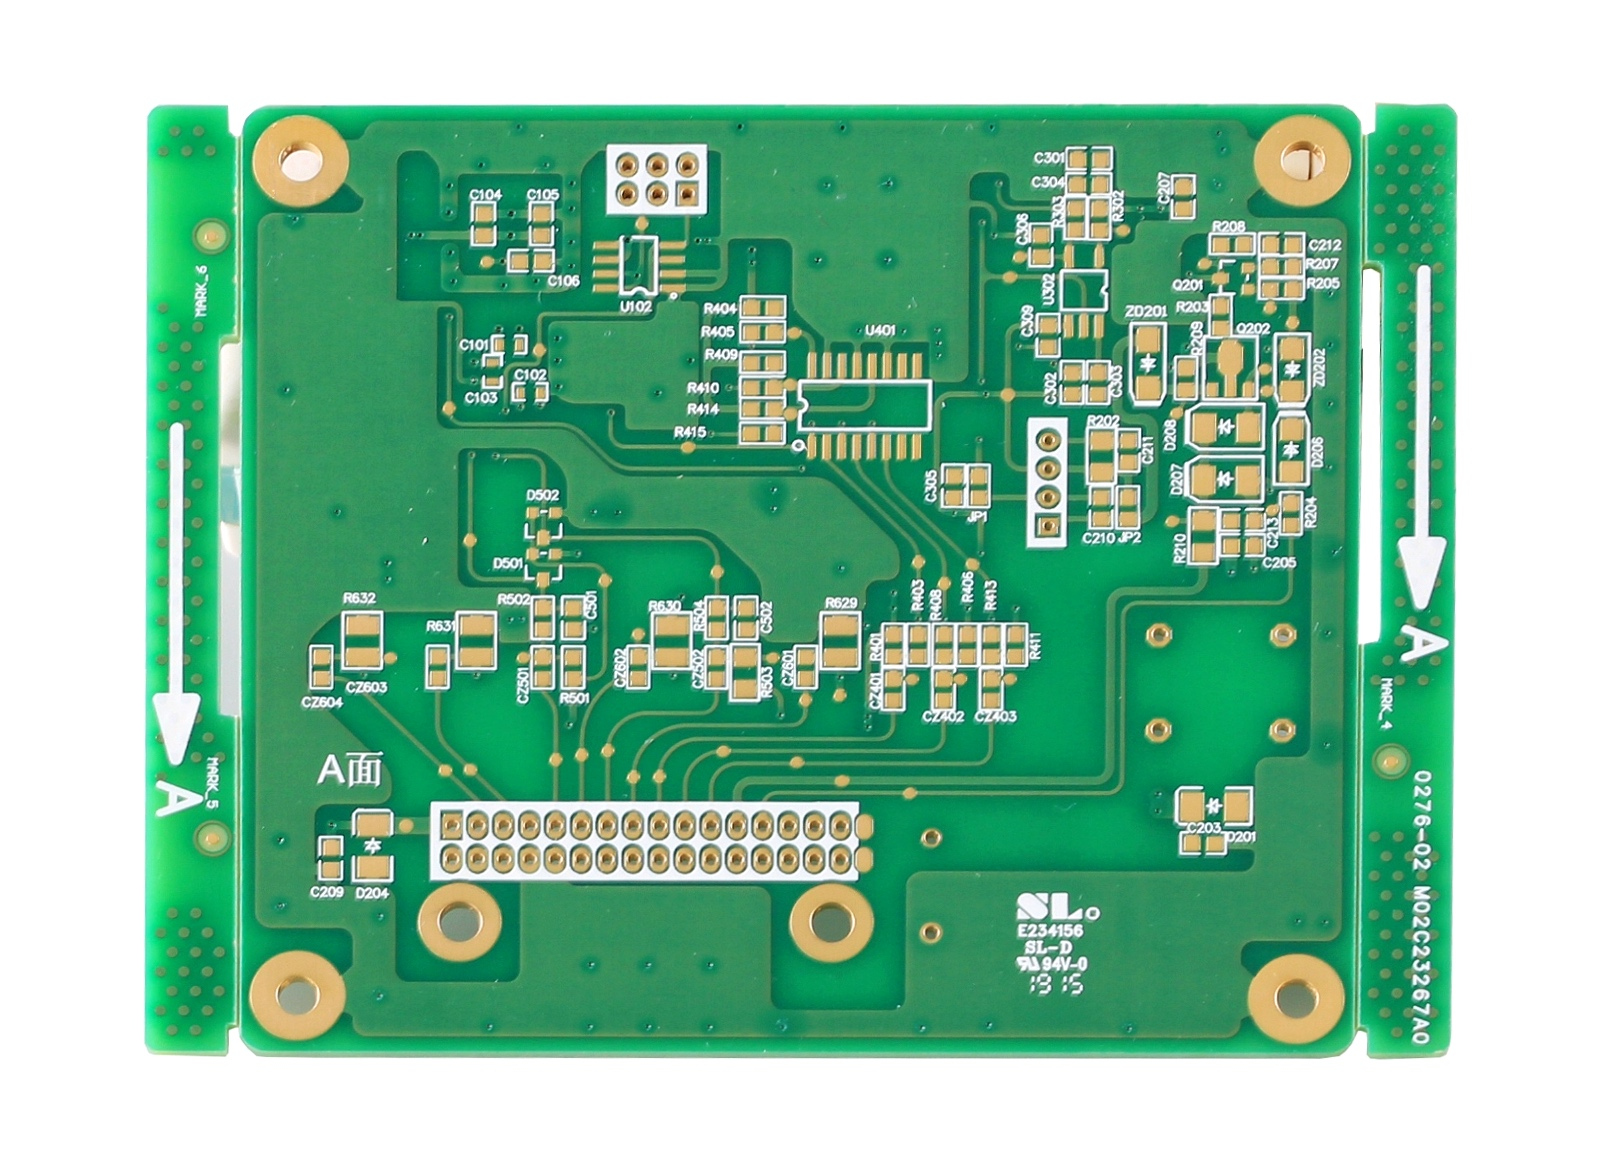 Automotive driving control system PCB